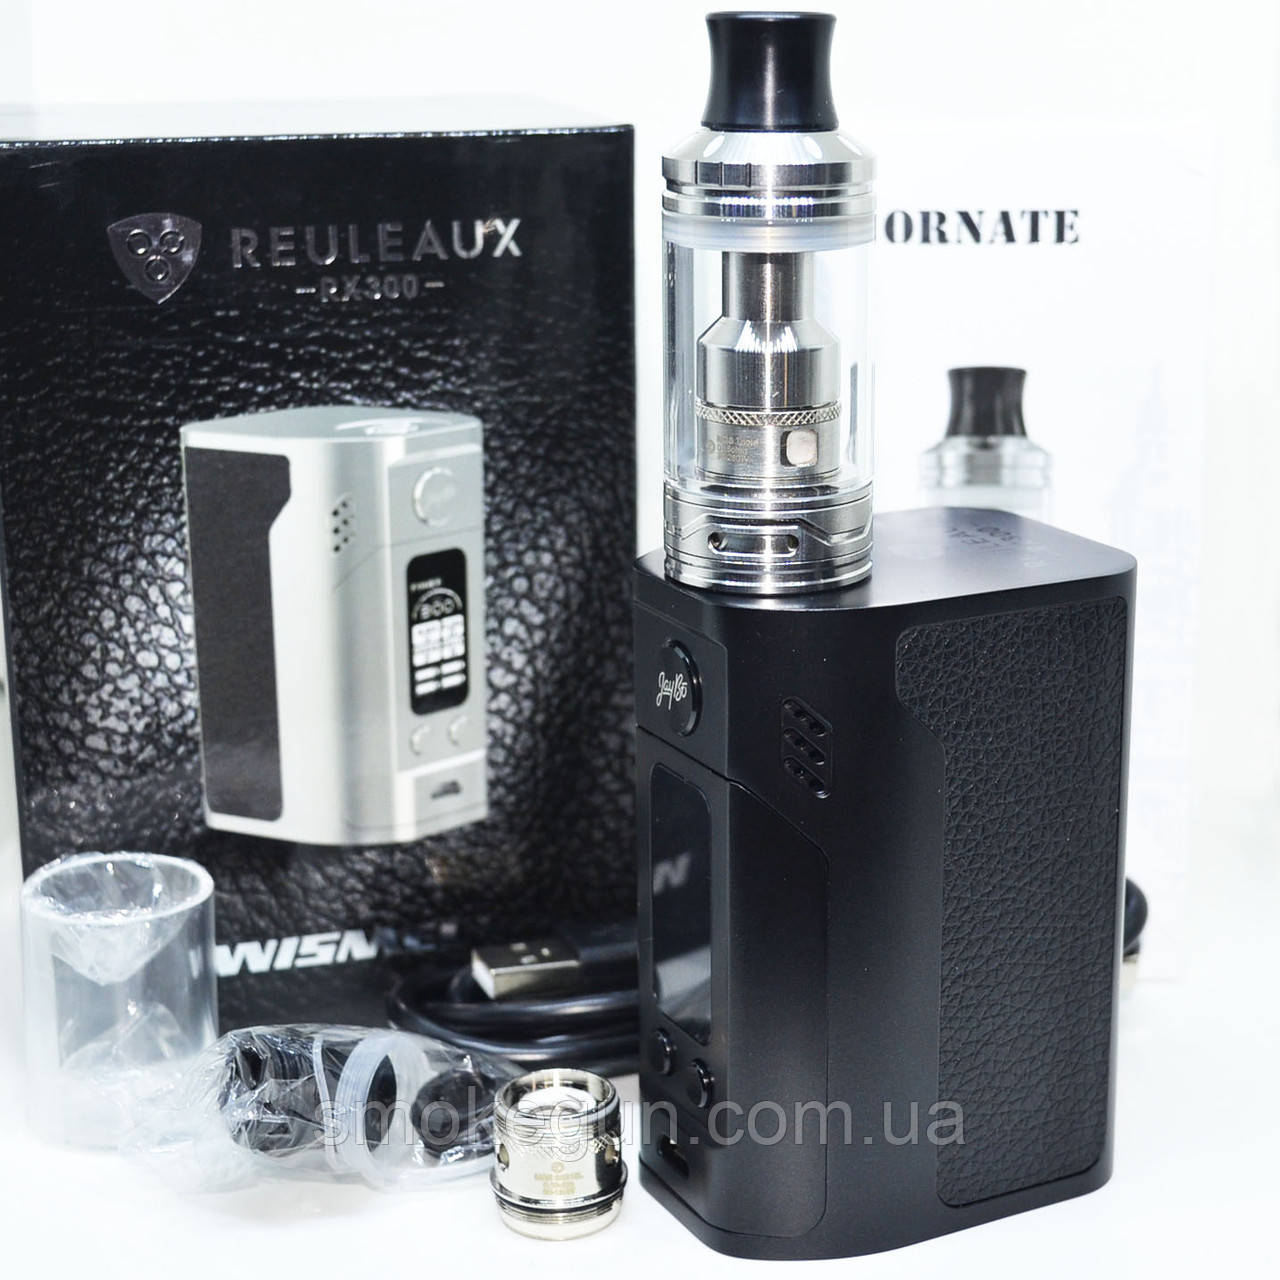 Wismec Reuleaux RX 300 Joyetech Ornate RTA 6ml Original